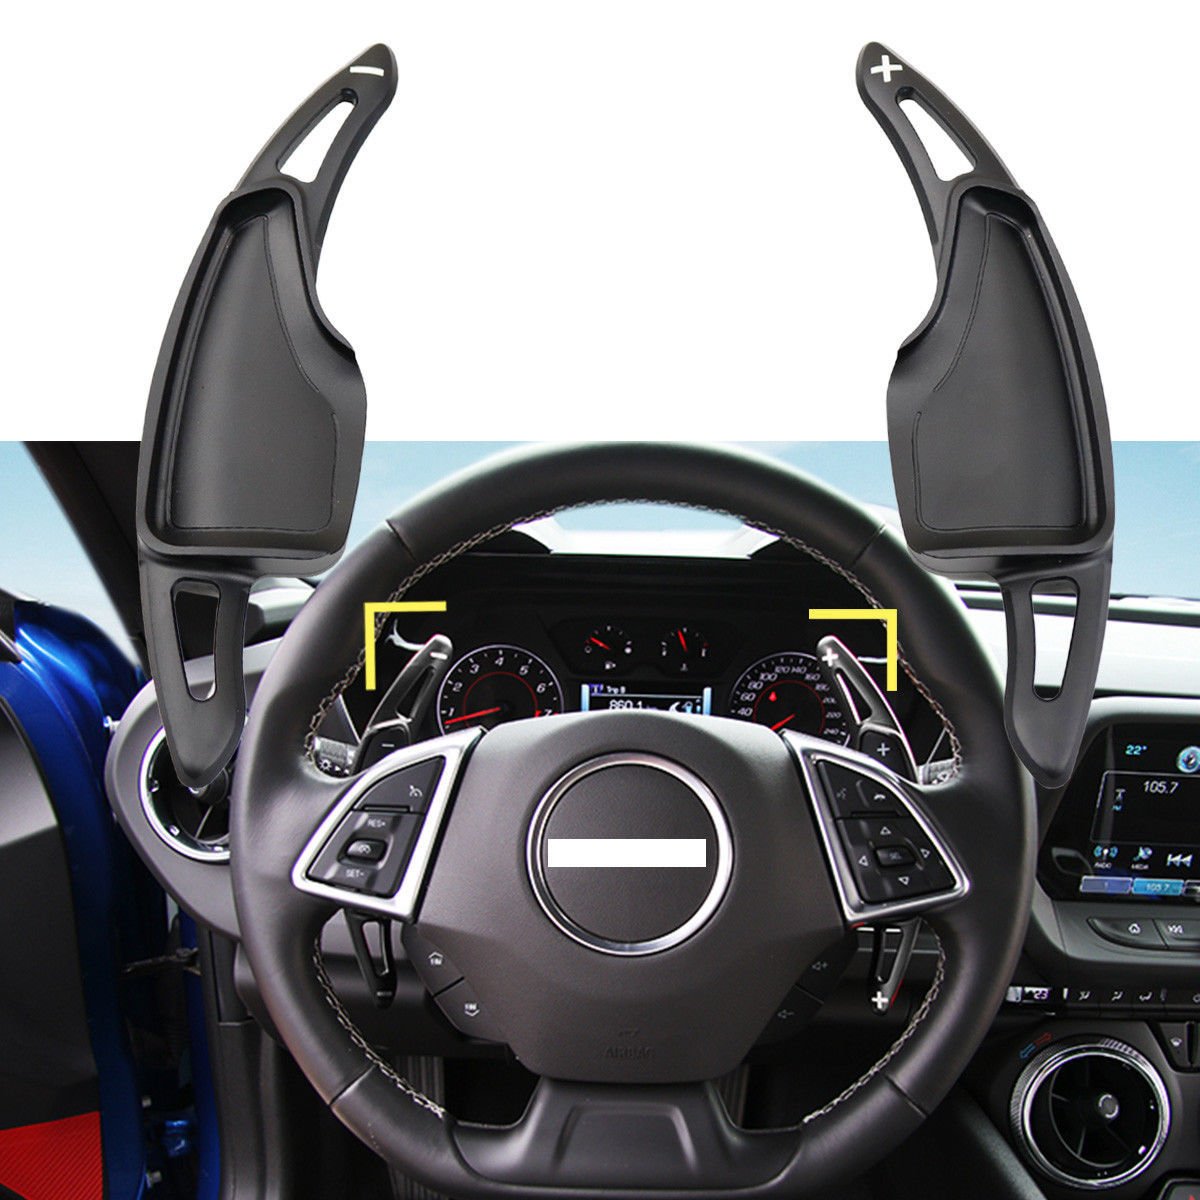 Confident Red/black/silver Inner Steering Wheel Paddle Shifters Dsg Extension Aluminium Alloy For Chevrolet Camaro 2016-2018 Car Styling Automobiles & Motorcycles Interior Mouldings